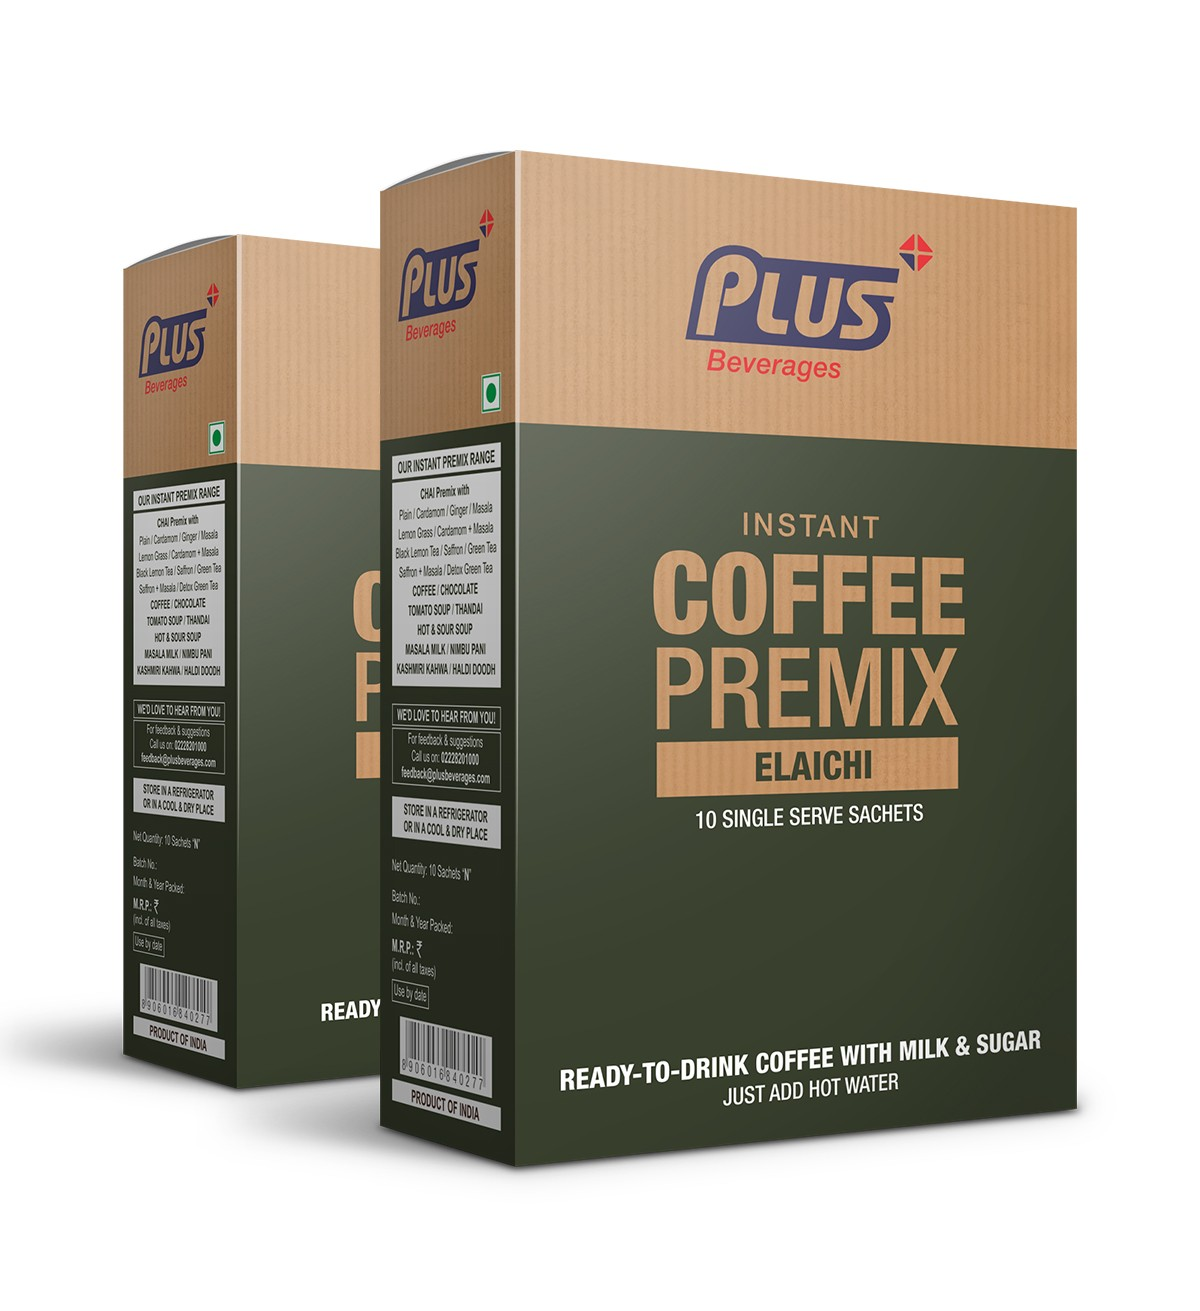 Get Instant Cardamom Coffee Premix at best price - Free Shipping | Plus Beverages